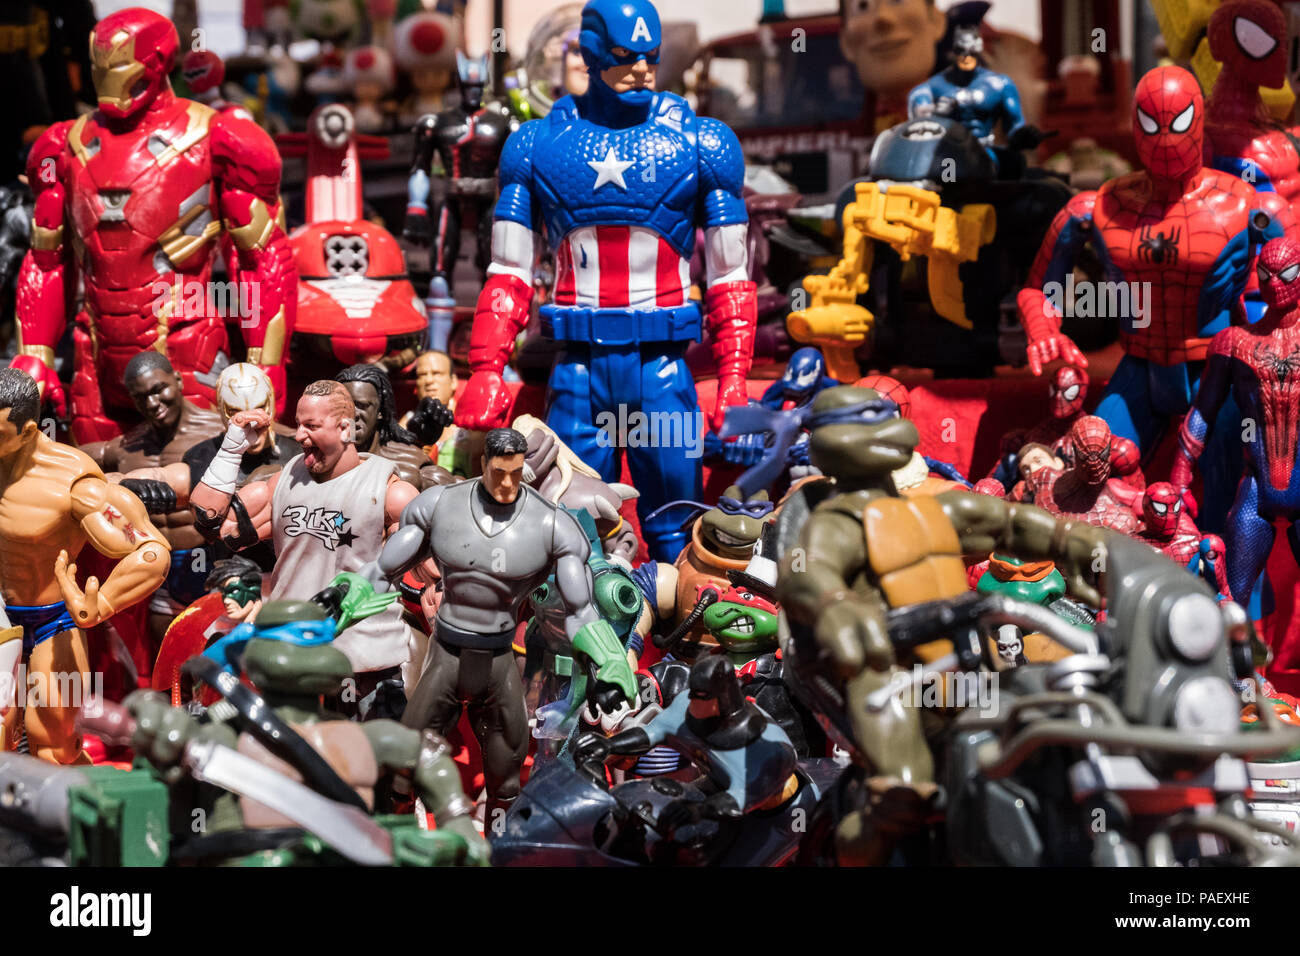 Background Of Film And Cartoon Superheroes Action Figures Toys Stock Photo Alamy